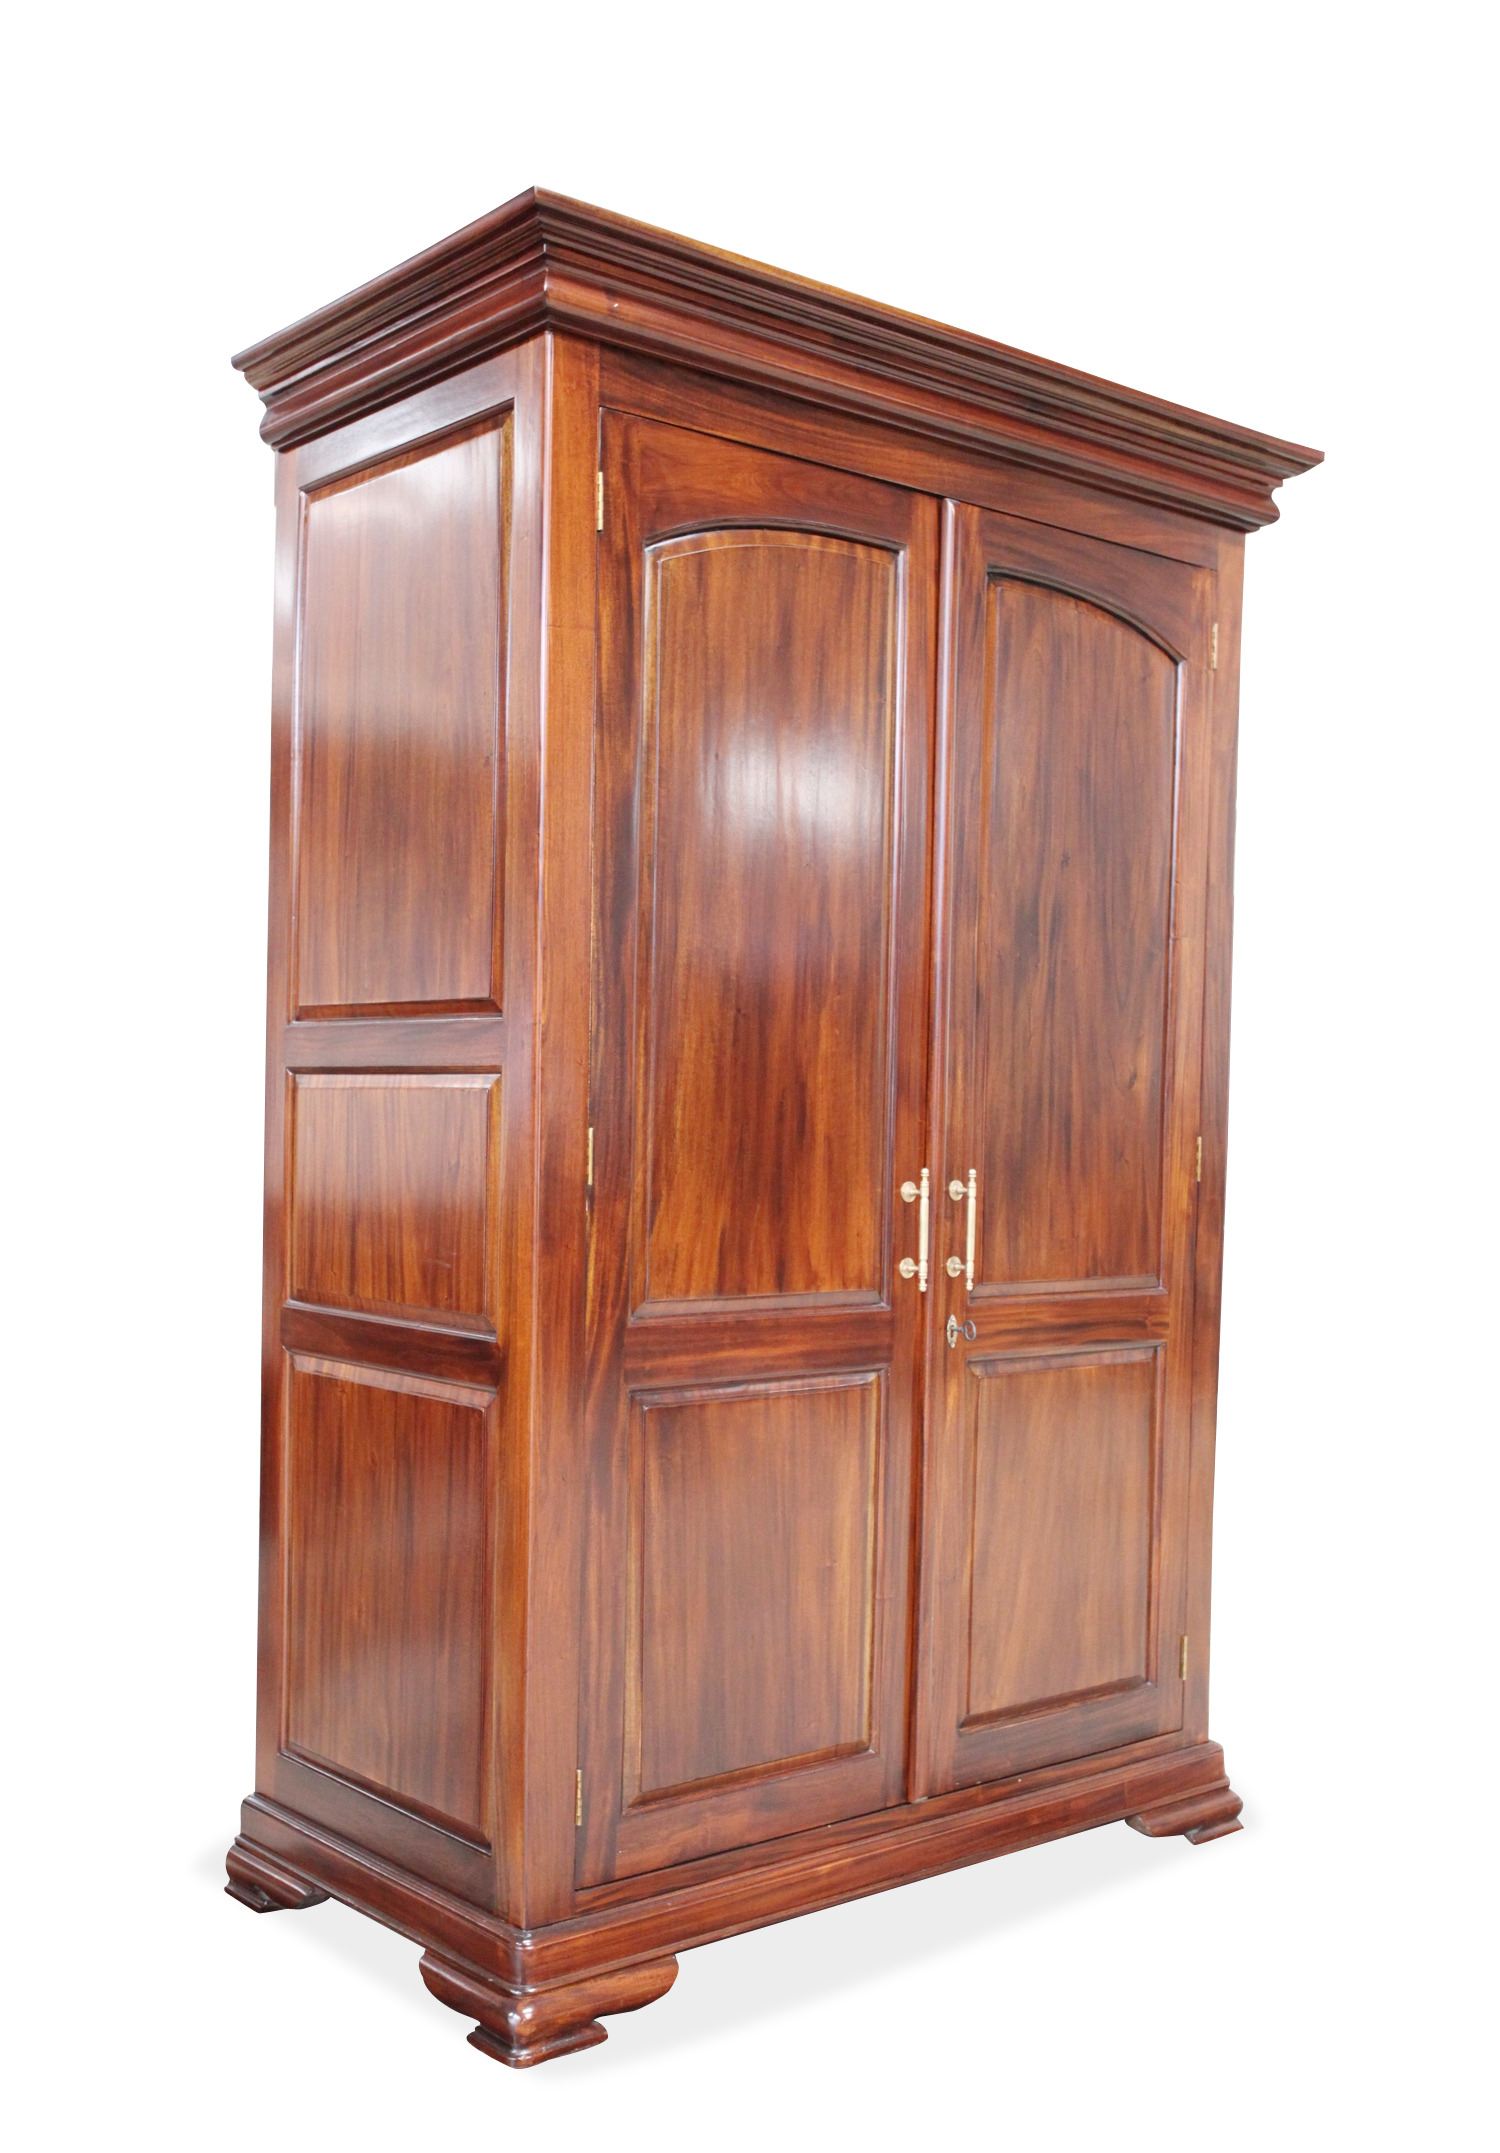 Vanessa Wardrobe Made Of Solid Mahogany Wood Dimendions L130xw64xh20 Cm Price 129000 Solid Mahogany Mahogany Wood Comfy Bed